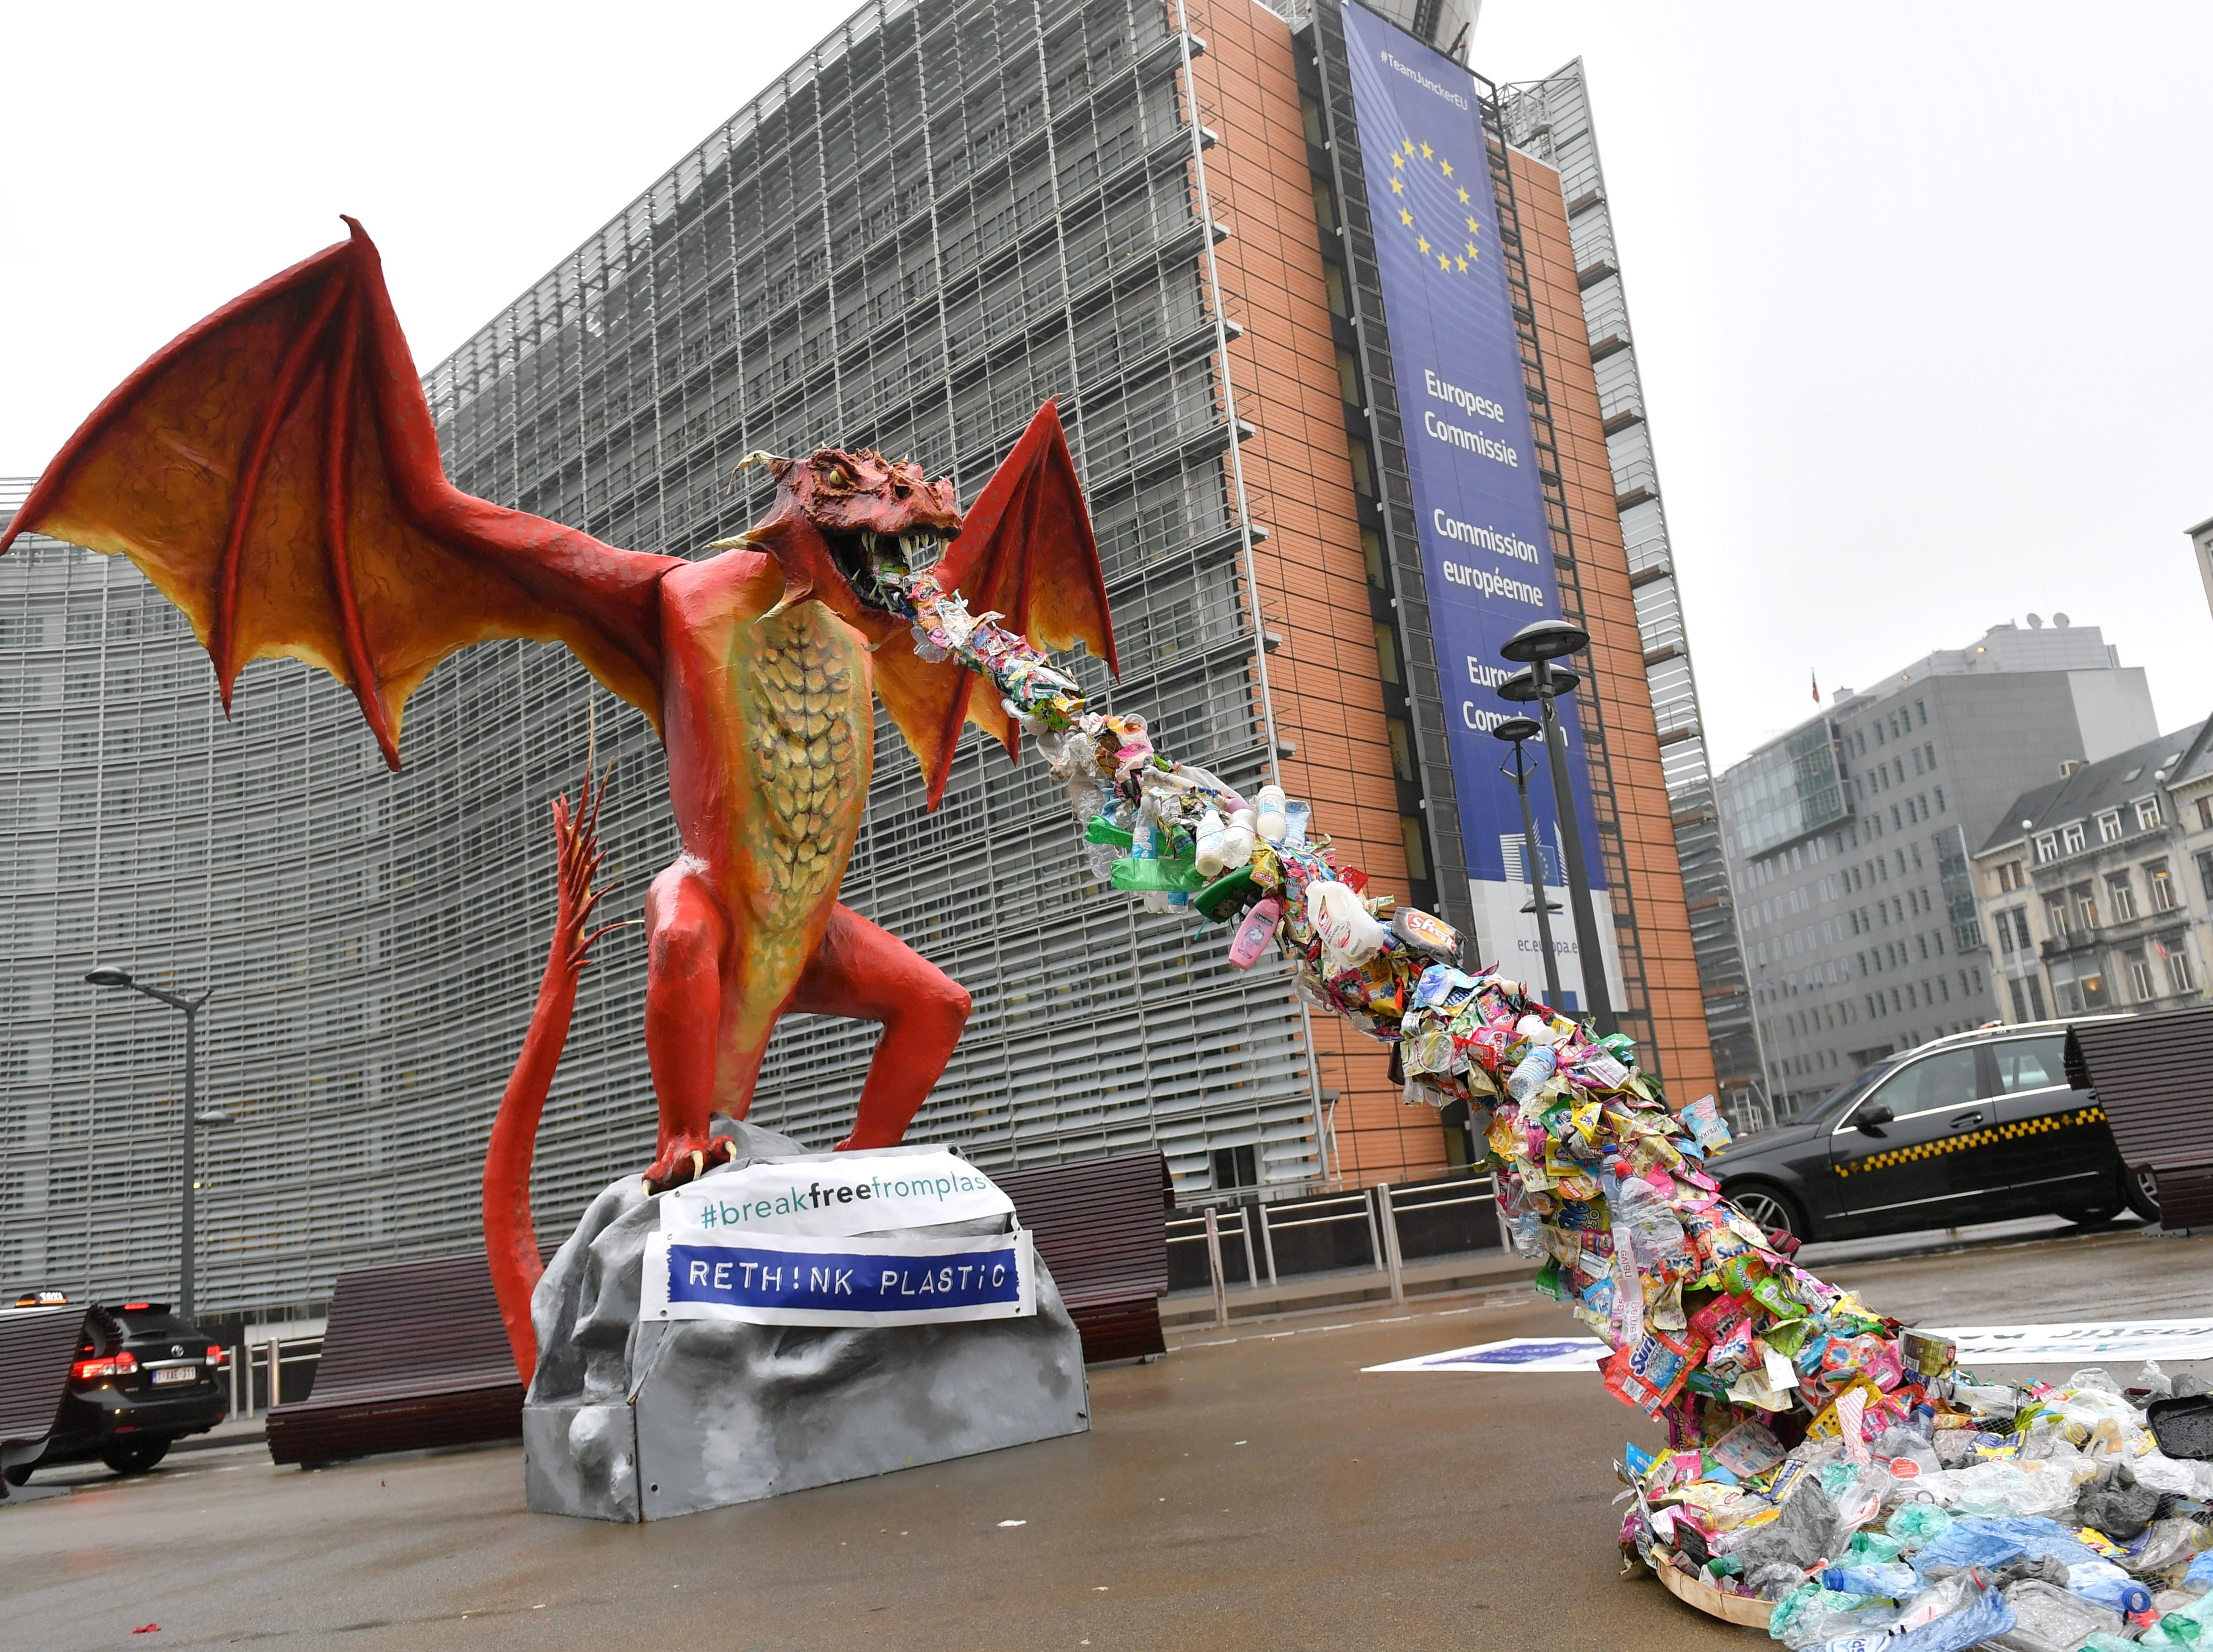 A statue depicting a plastic-throwing dragon is set up in front of the European Commission, during an action by NGO alliance Rethink Plastic to demand an end of the use of disposable plastic, in Brussels on Nov. 26, 2018. The EU adopted in January 2018 the first European Strategy for Plastics in a Circular Economy that is aimed at transforming the way plastic products are designed, used, produced and recycled in member countries.